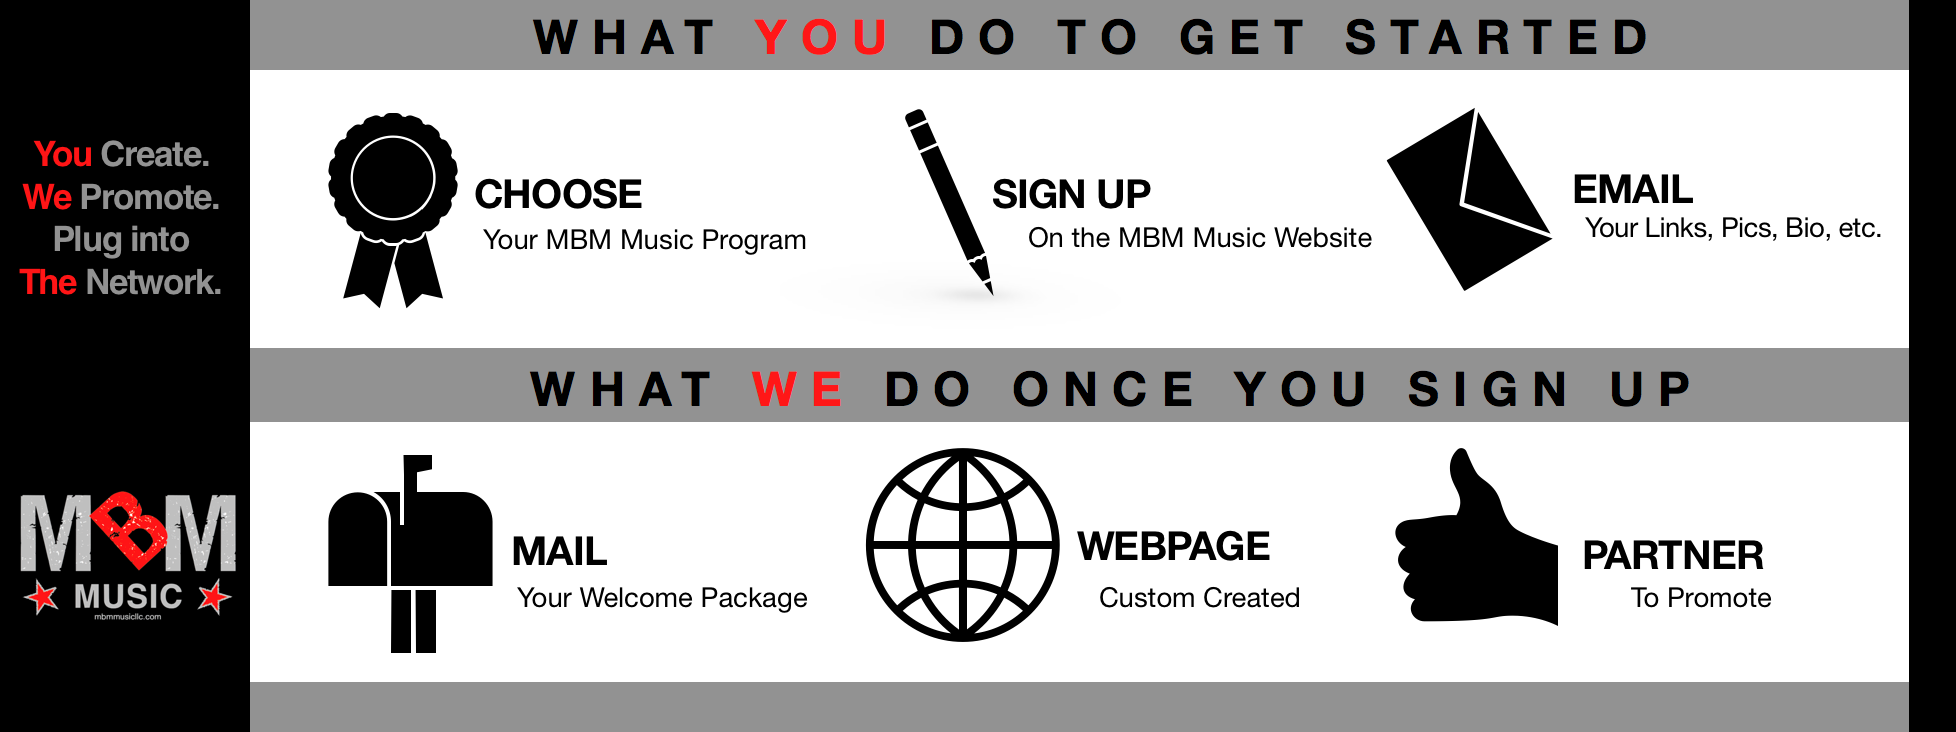 The MBM Network. You Create. We Promote. Plug Into The Network.